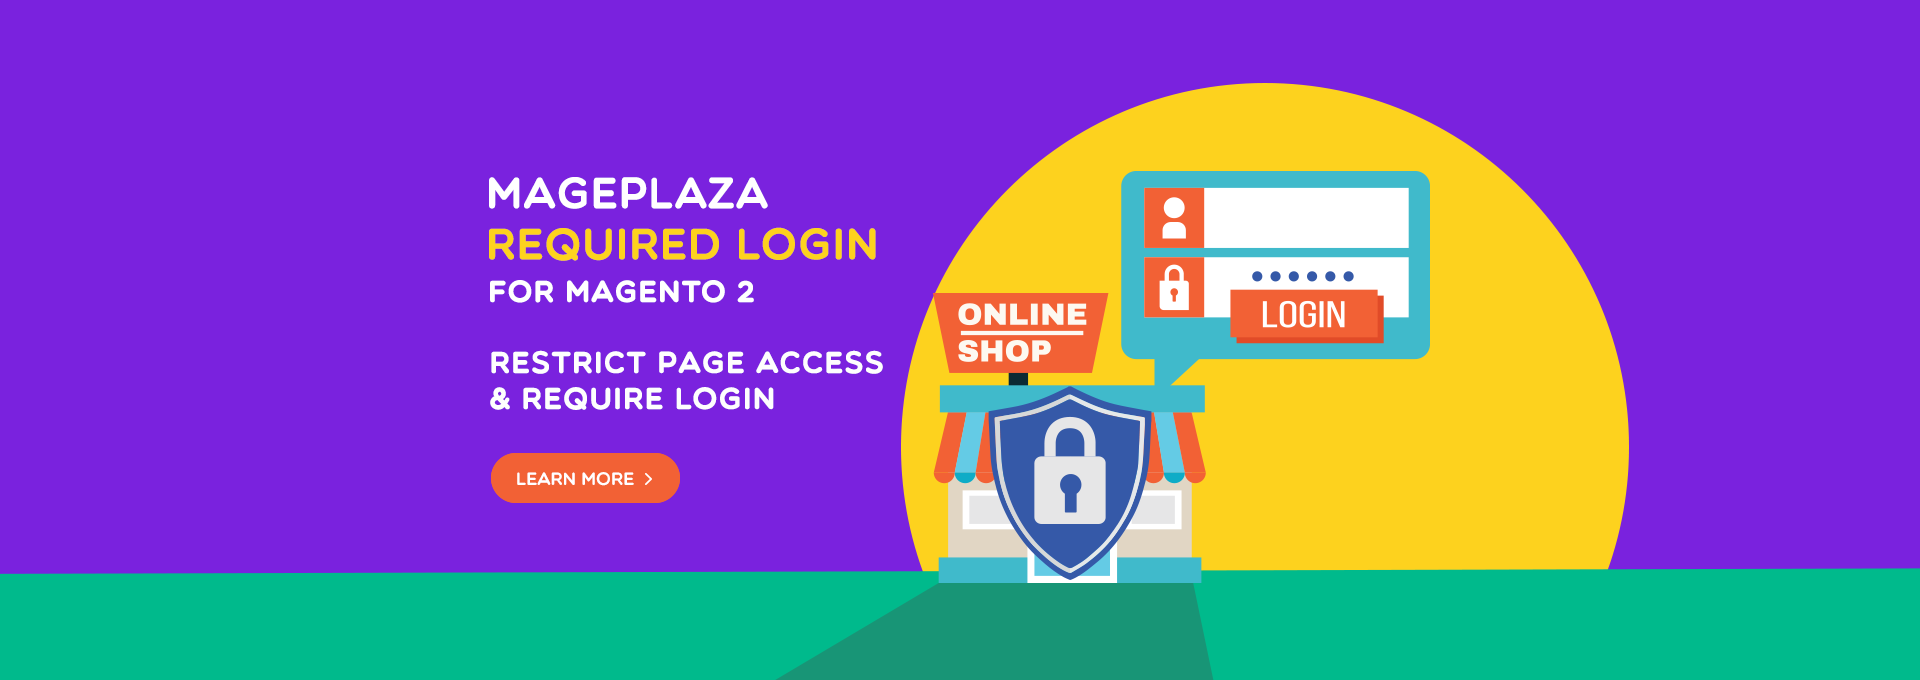 Required Login for Magento 2 - When and How to restrict page access